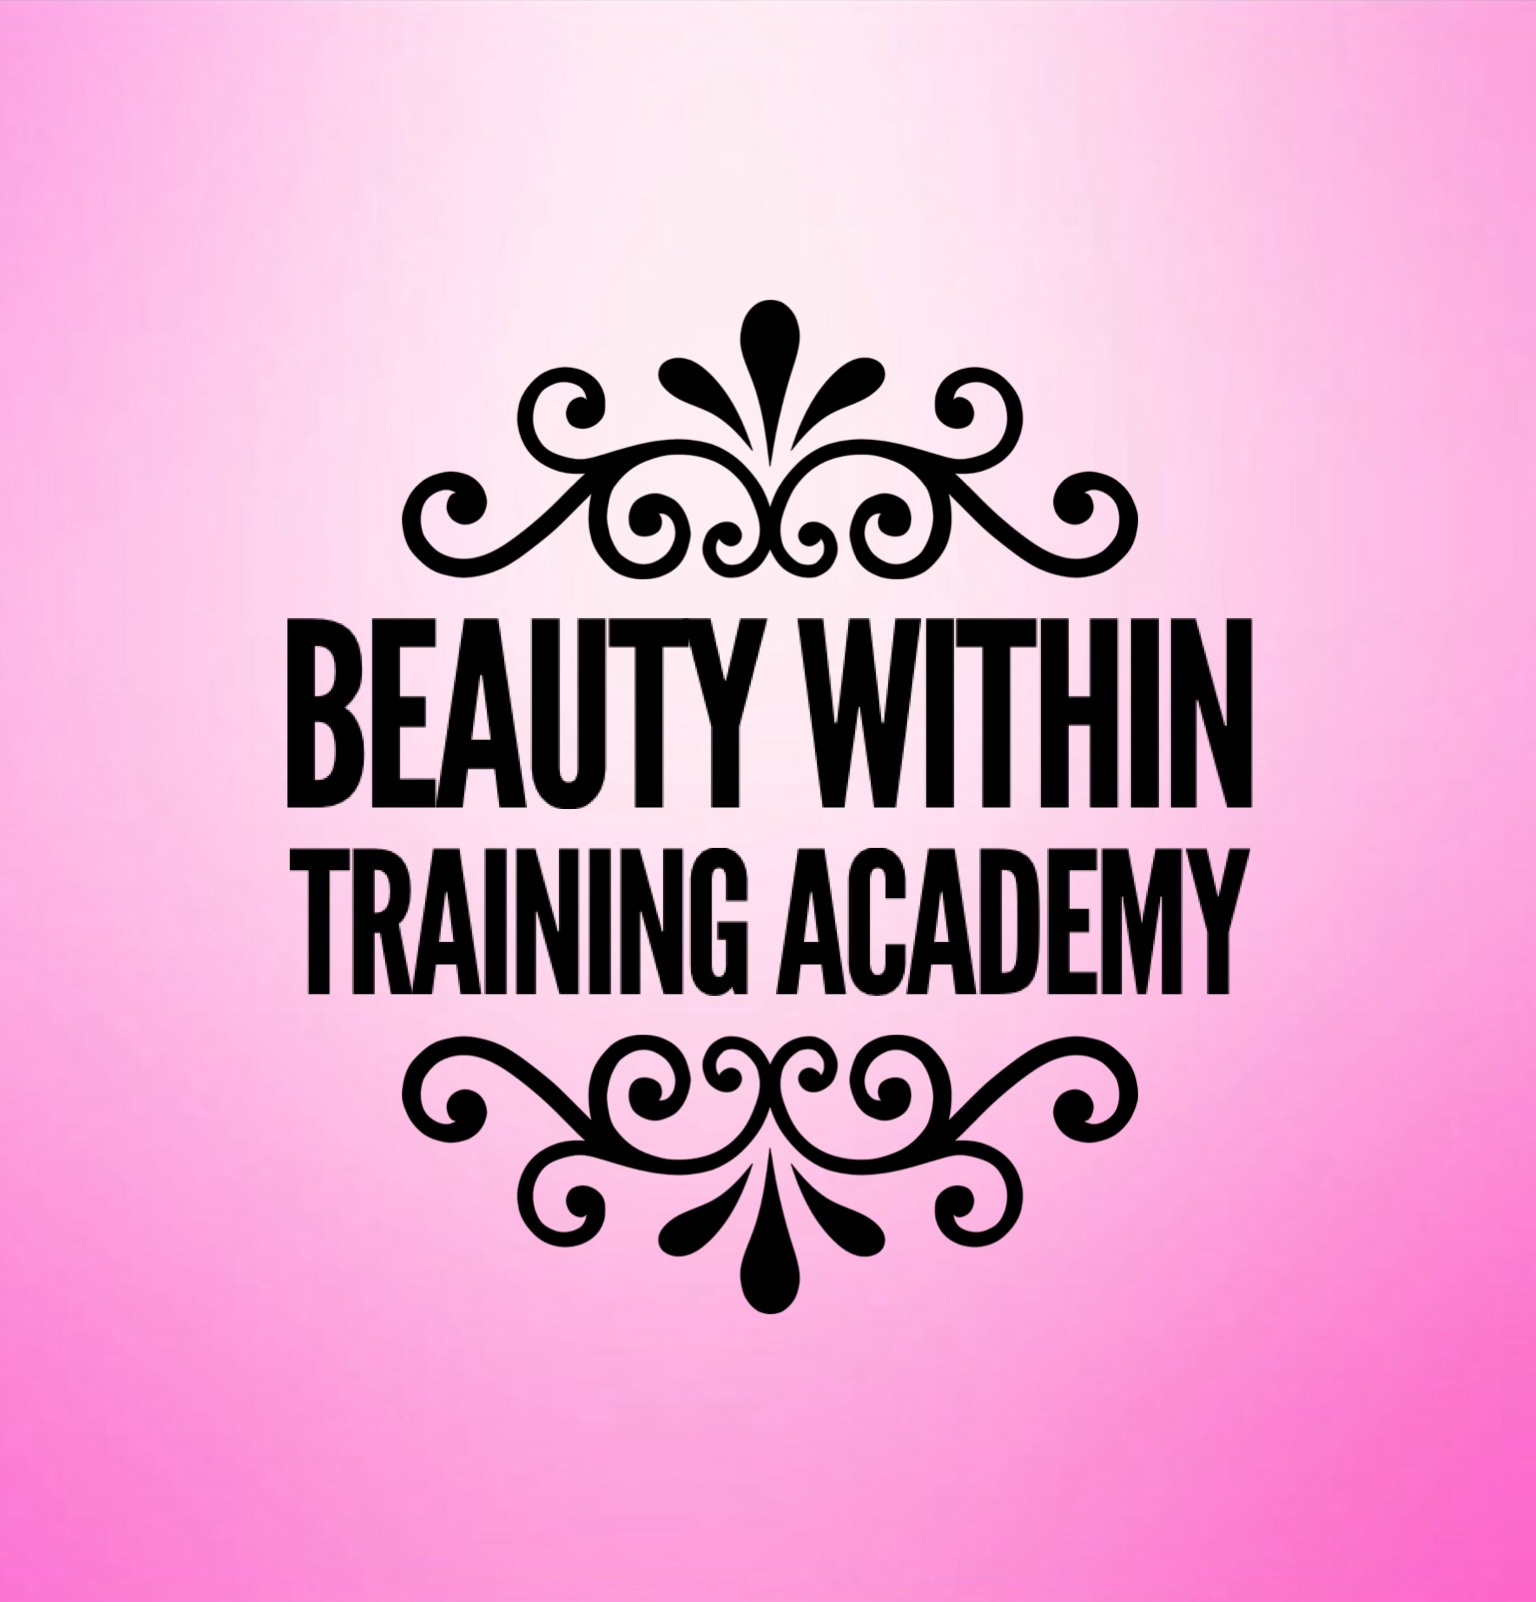 Beauty Within Training Academy